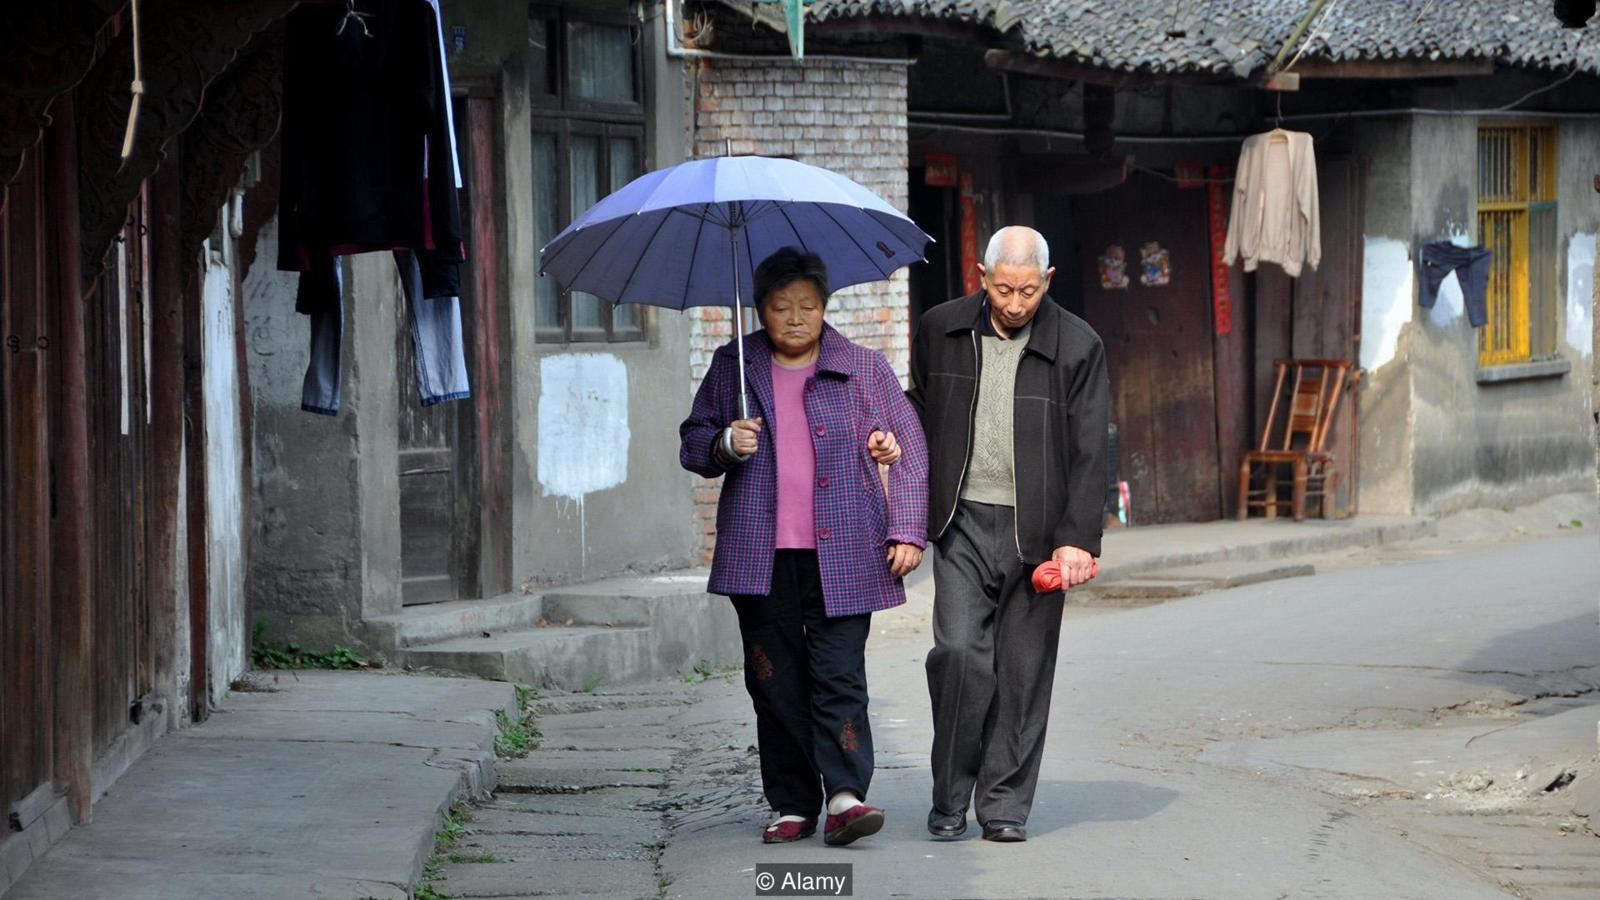 PENGZHOU, CHINA: A loving elderly couple walking along Hua Lu Street